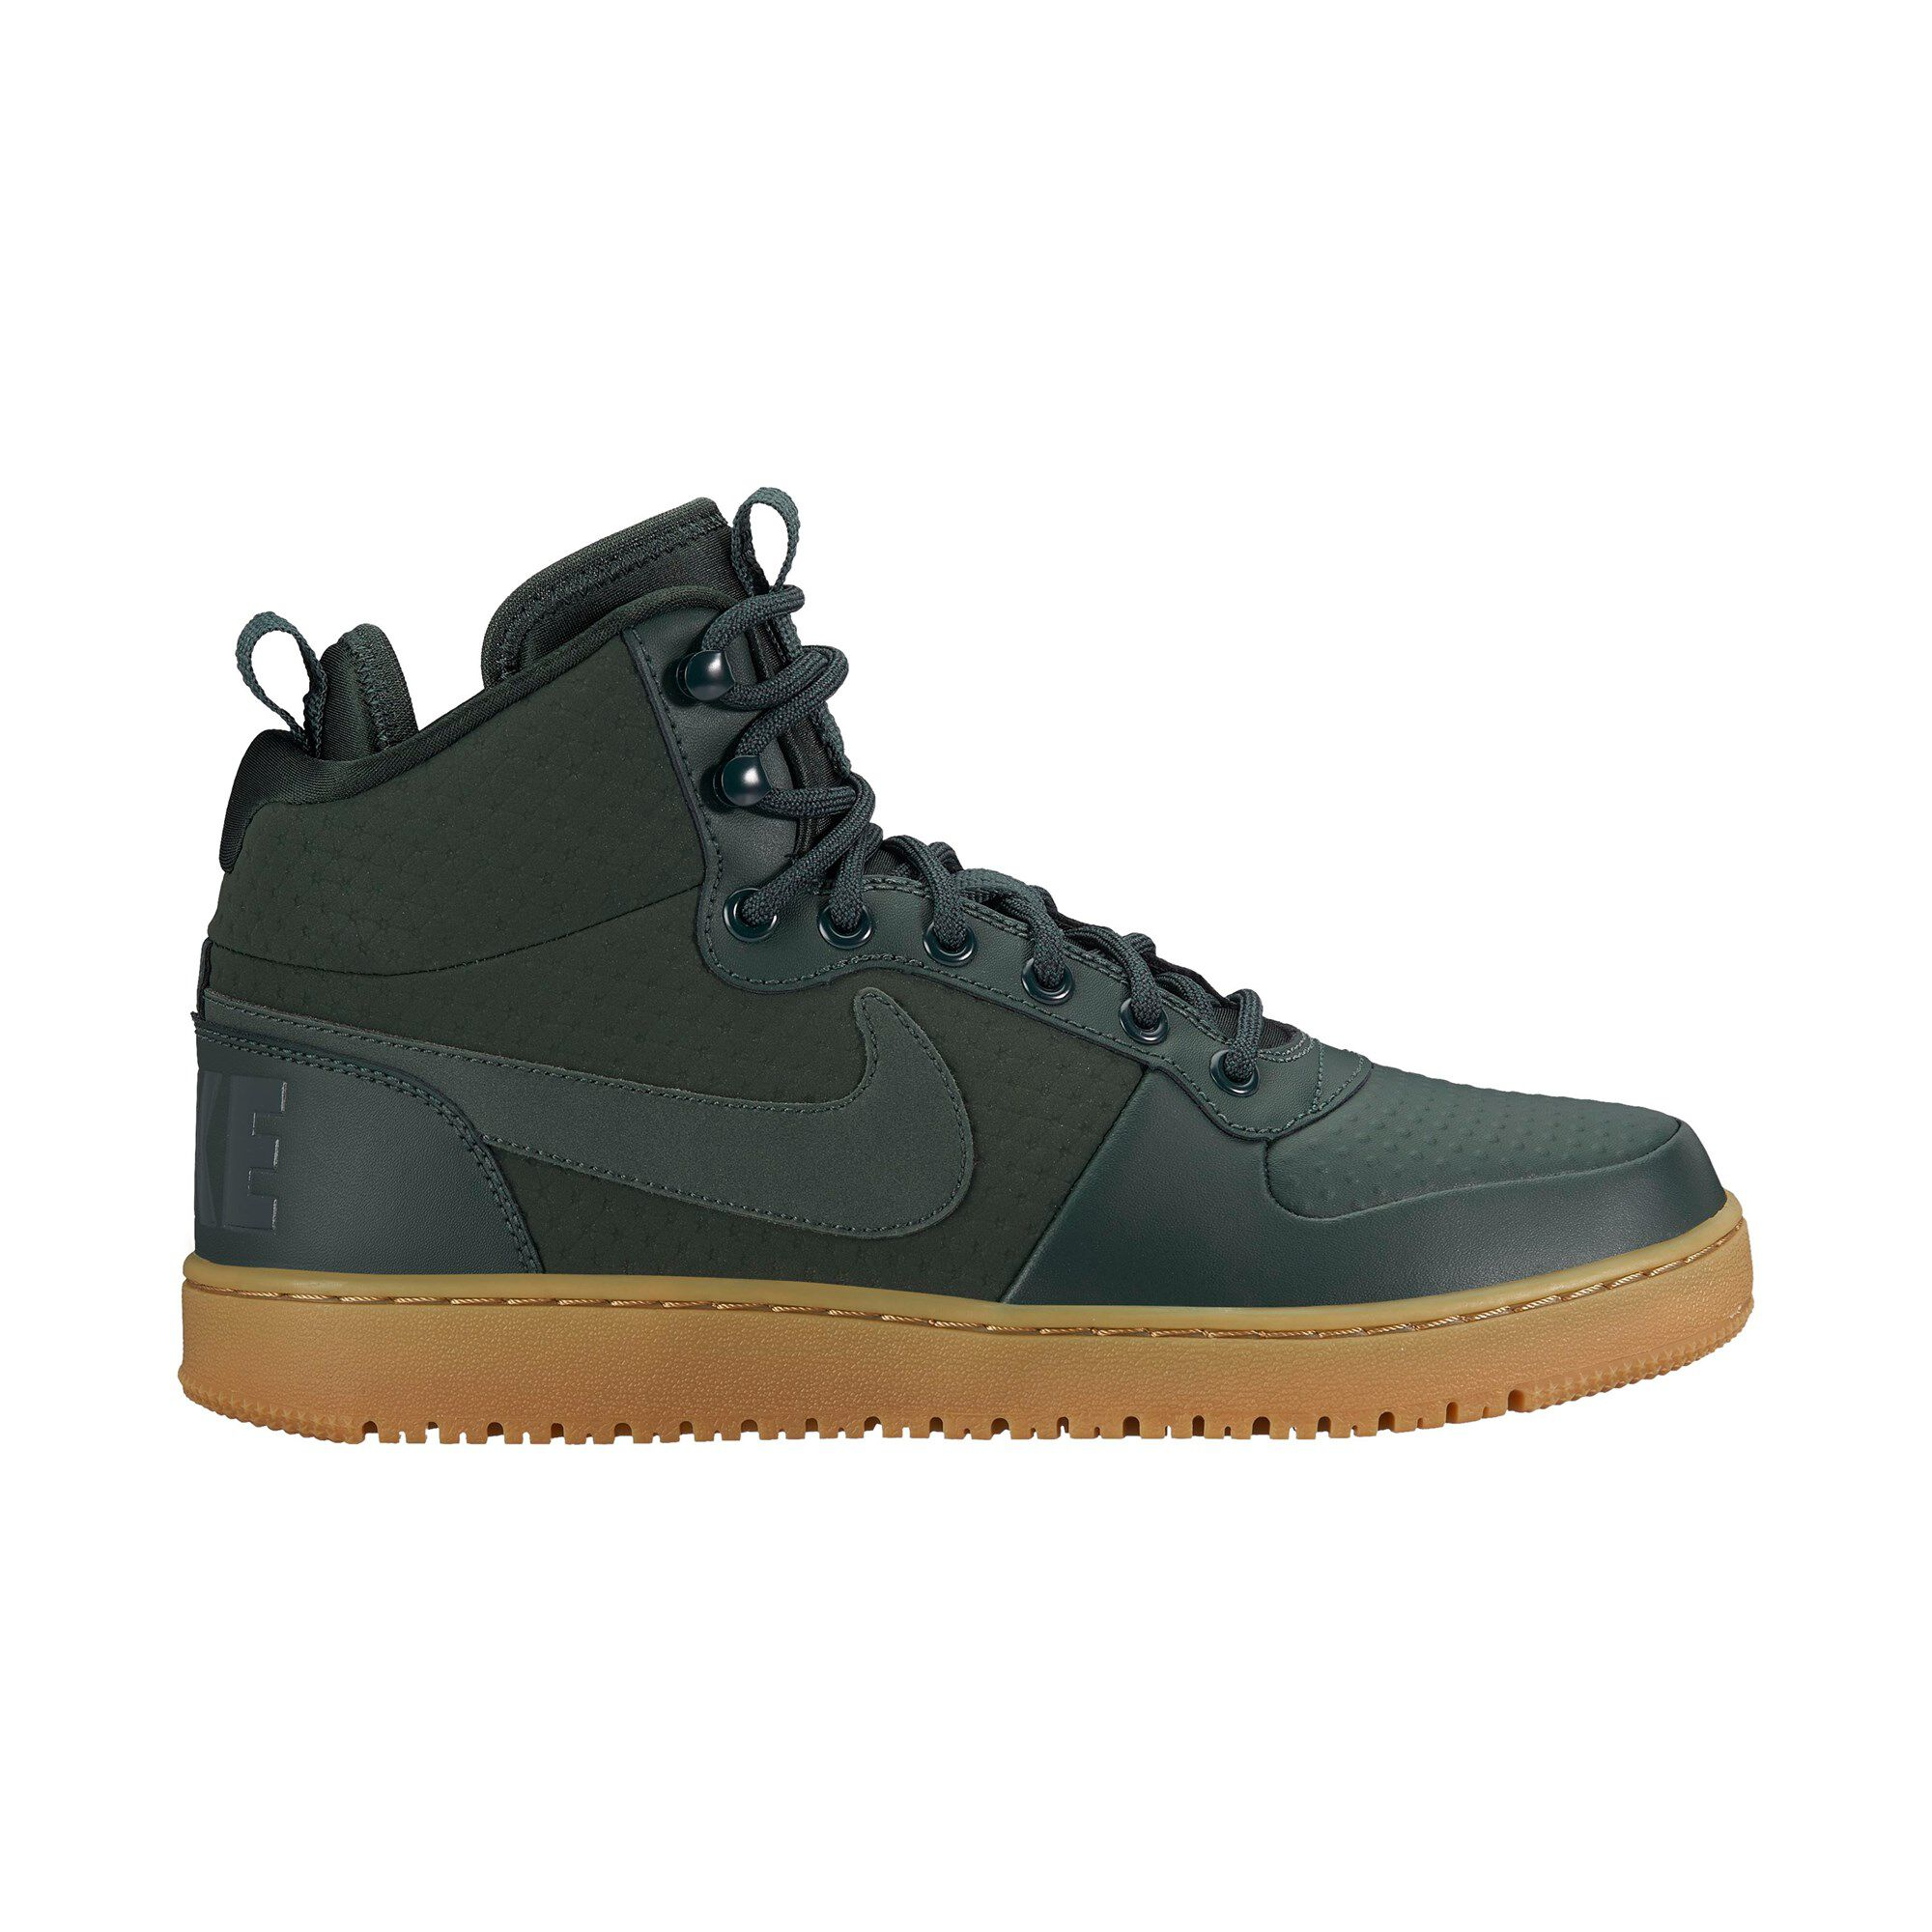 info for 21cf5 585ae ... discount code for nike court borough mid winter mænd grøn e345a 3e8d7